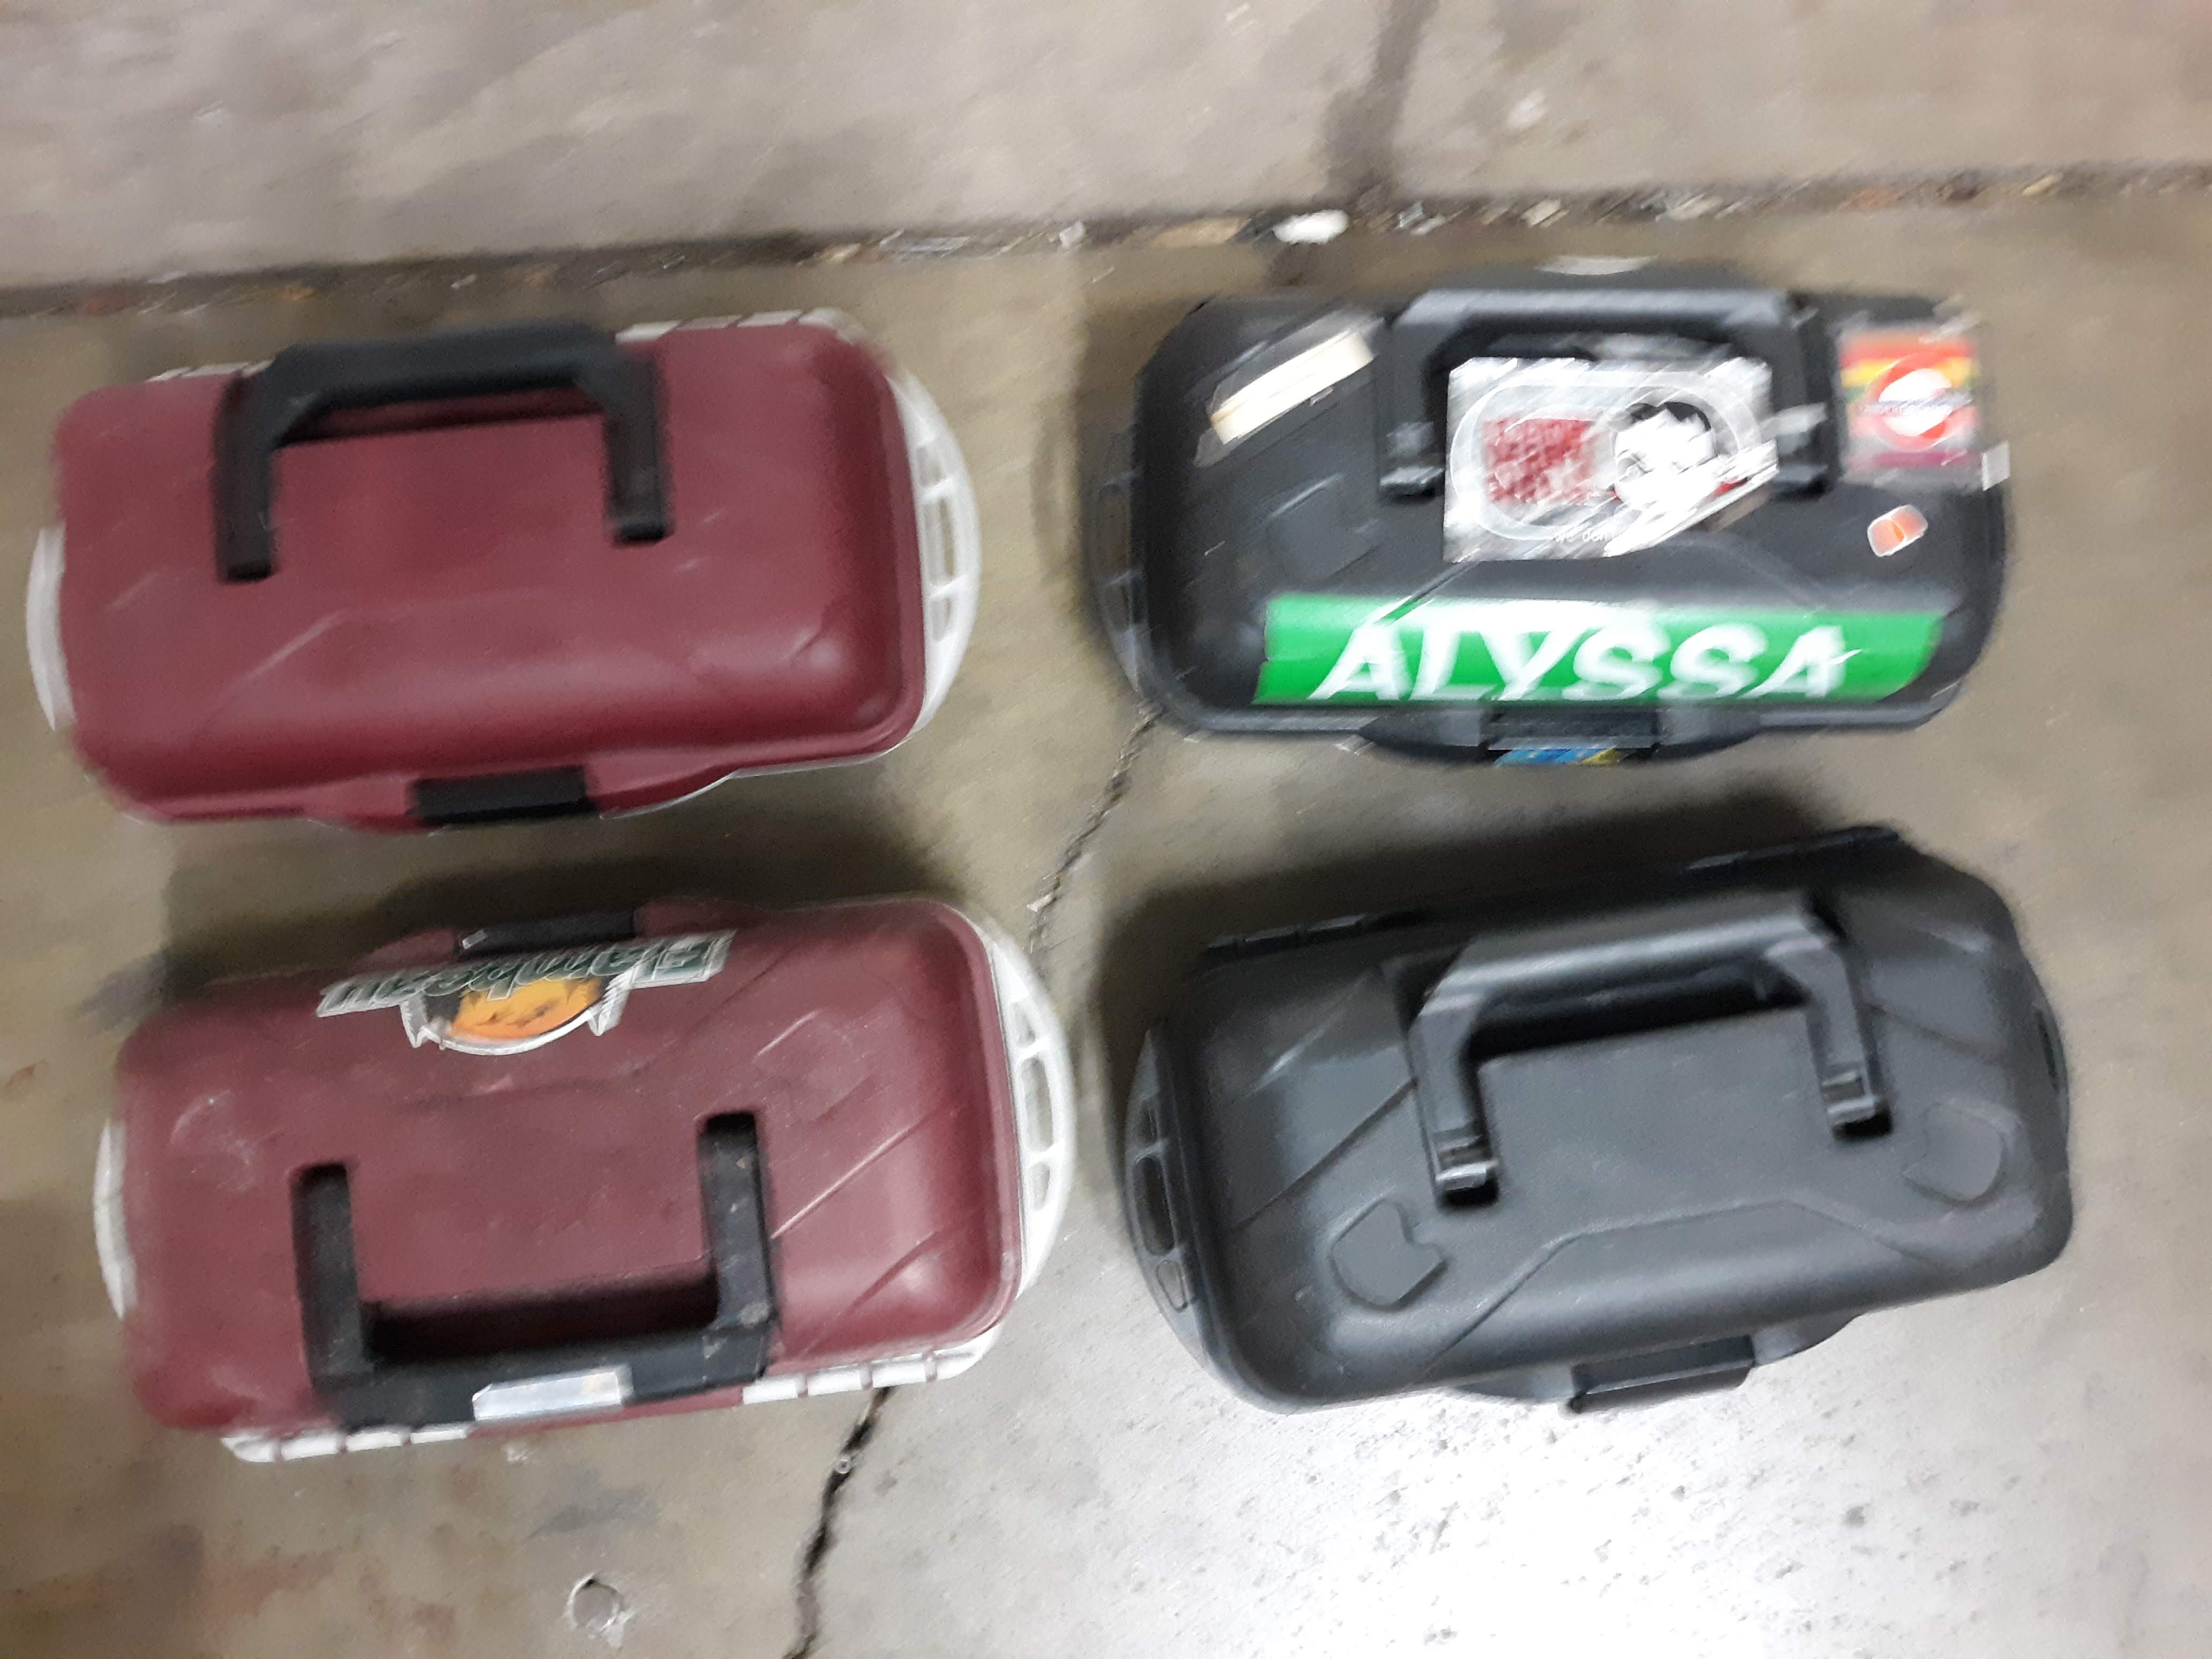 (4) PLASTIC TOOL BOX/ TACKLE BOXES (LOCATED AT: 432 COUNCIL DRIVE, FORT WAYNE, IN 46825) - Image 2 of 3